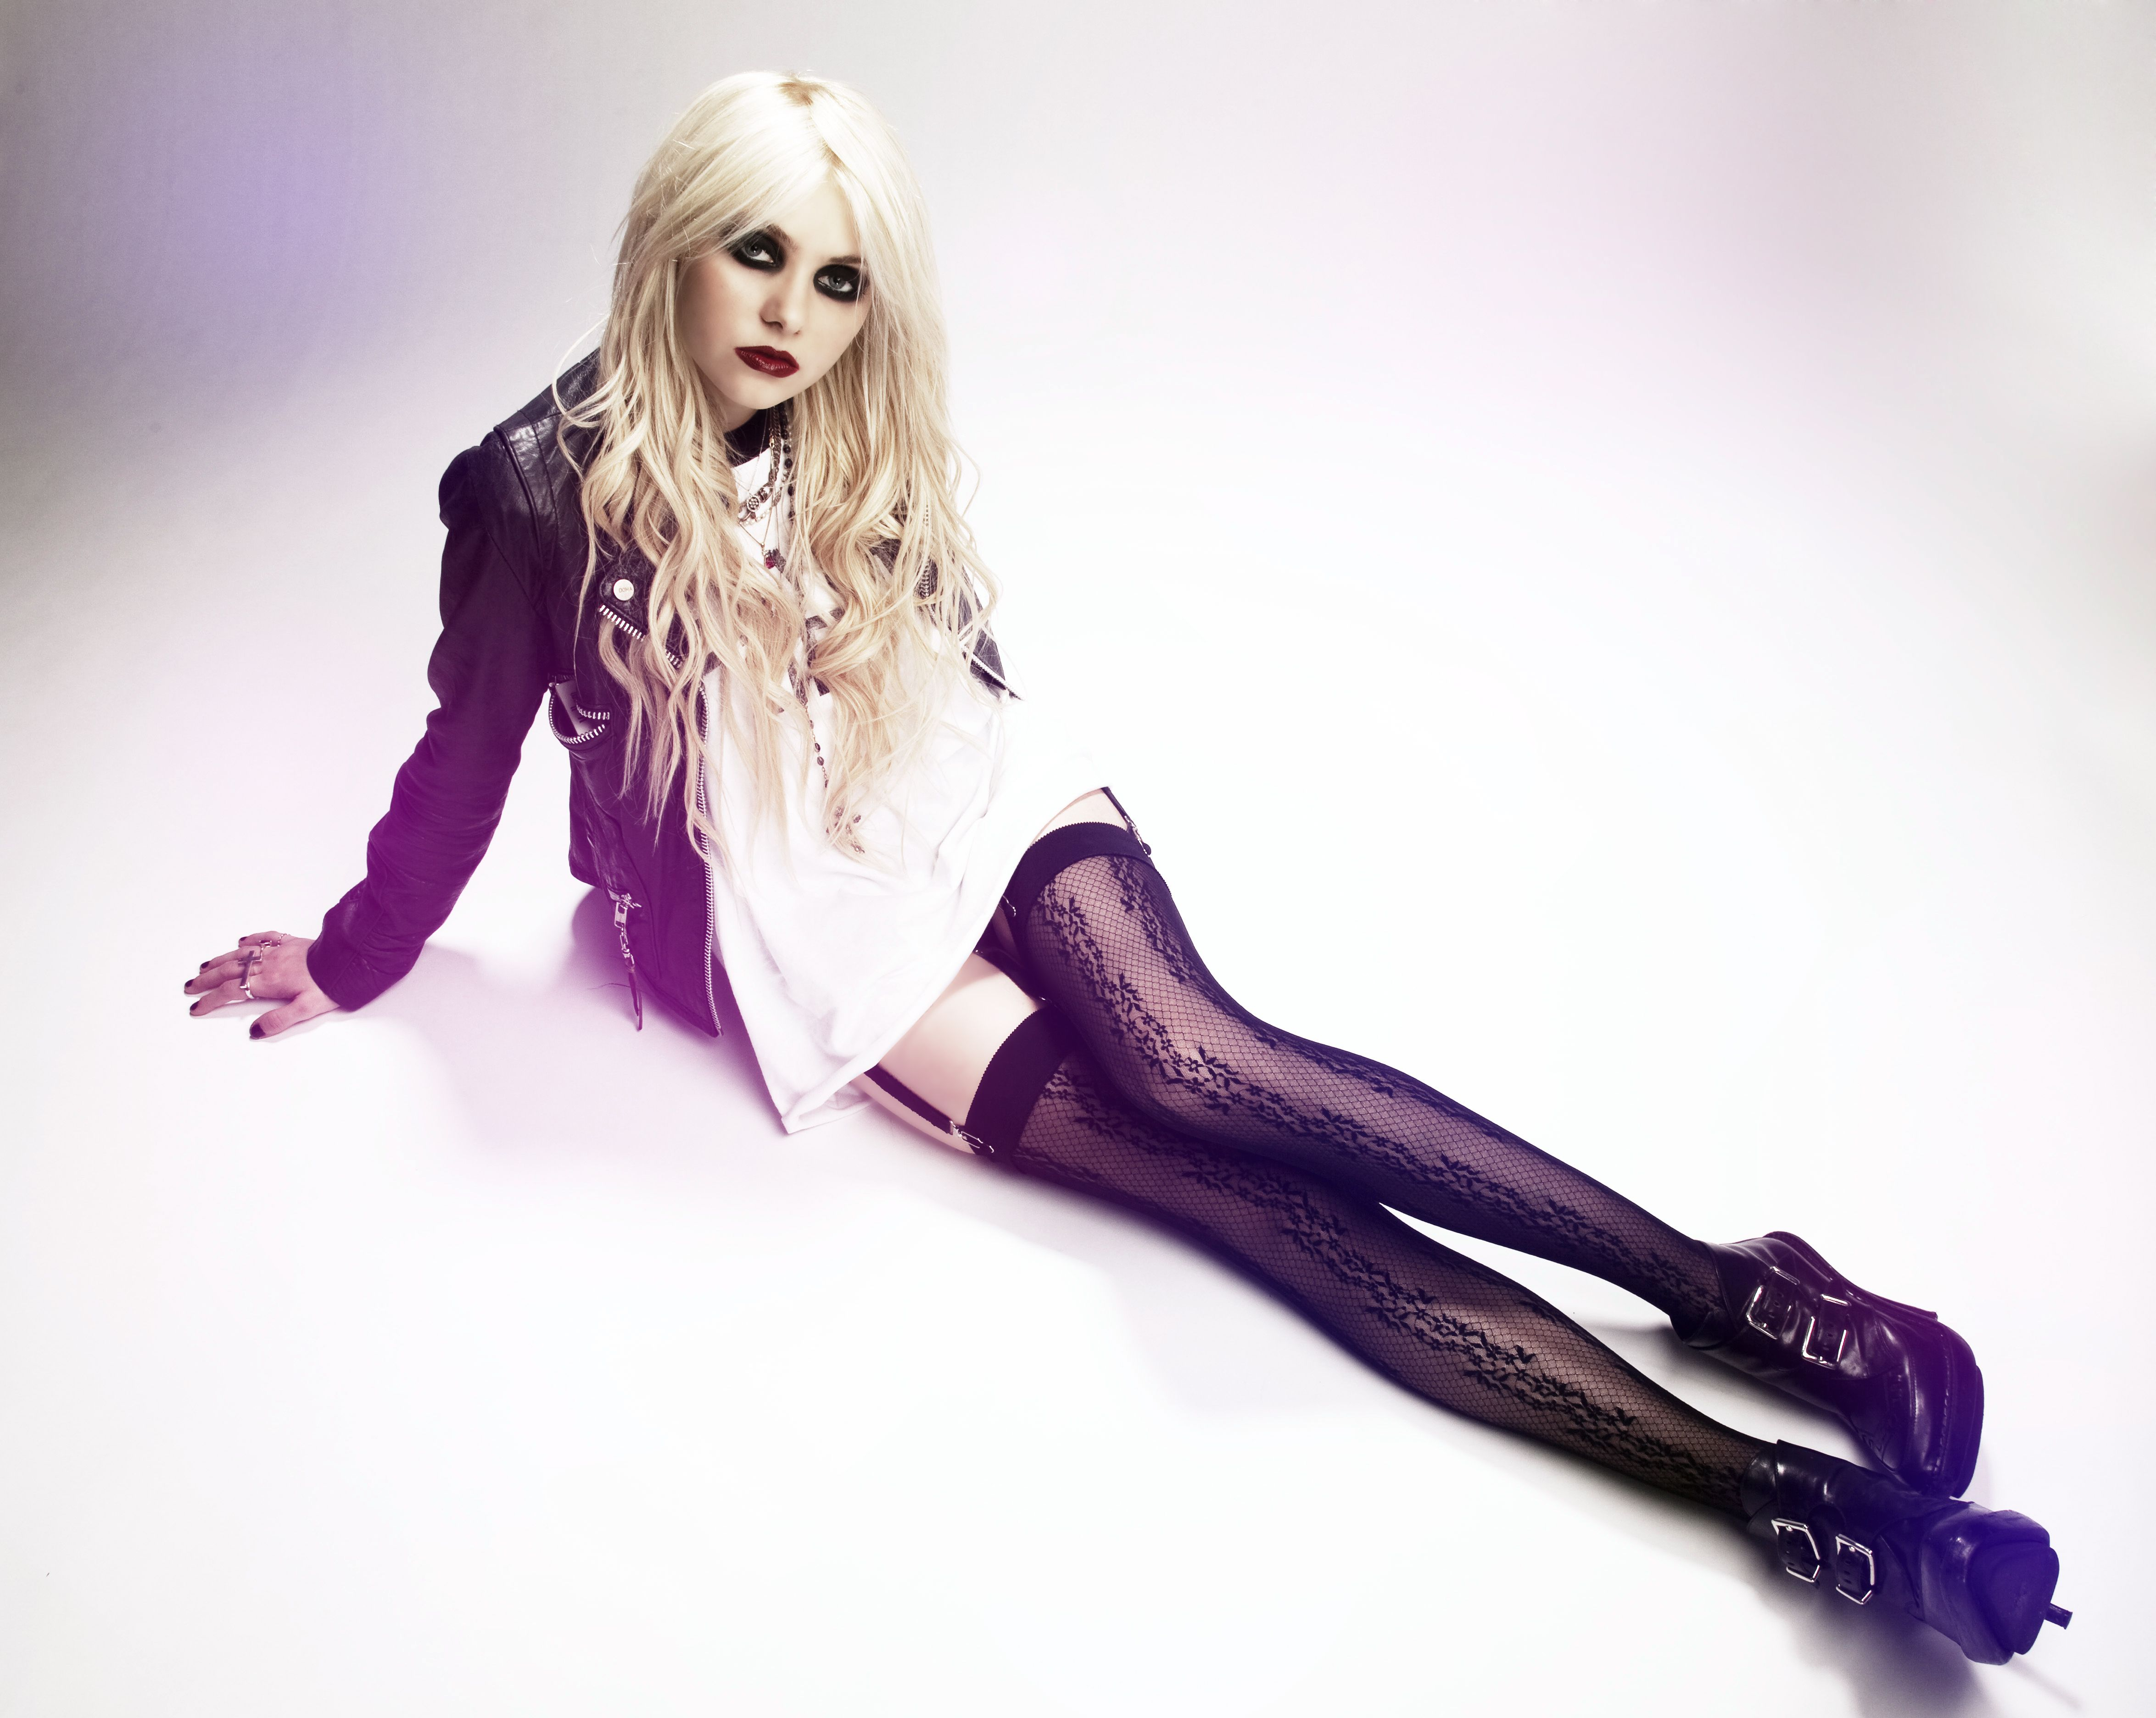 Taylor Momsen Model Glam Rock Fashion For Mary Taylor Momsen